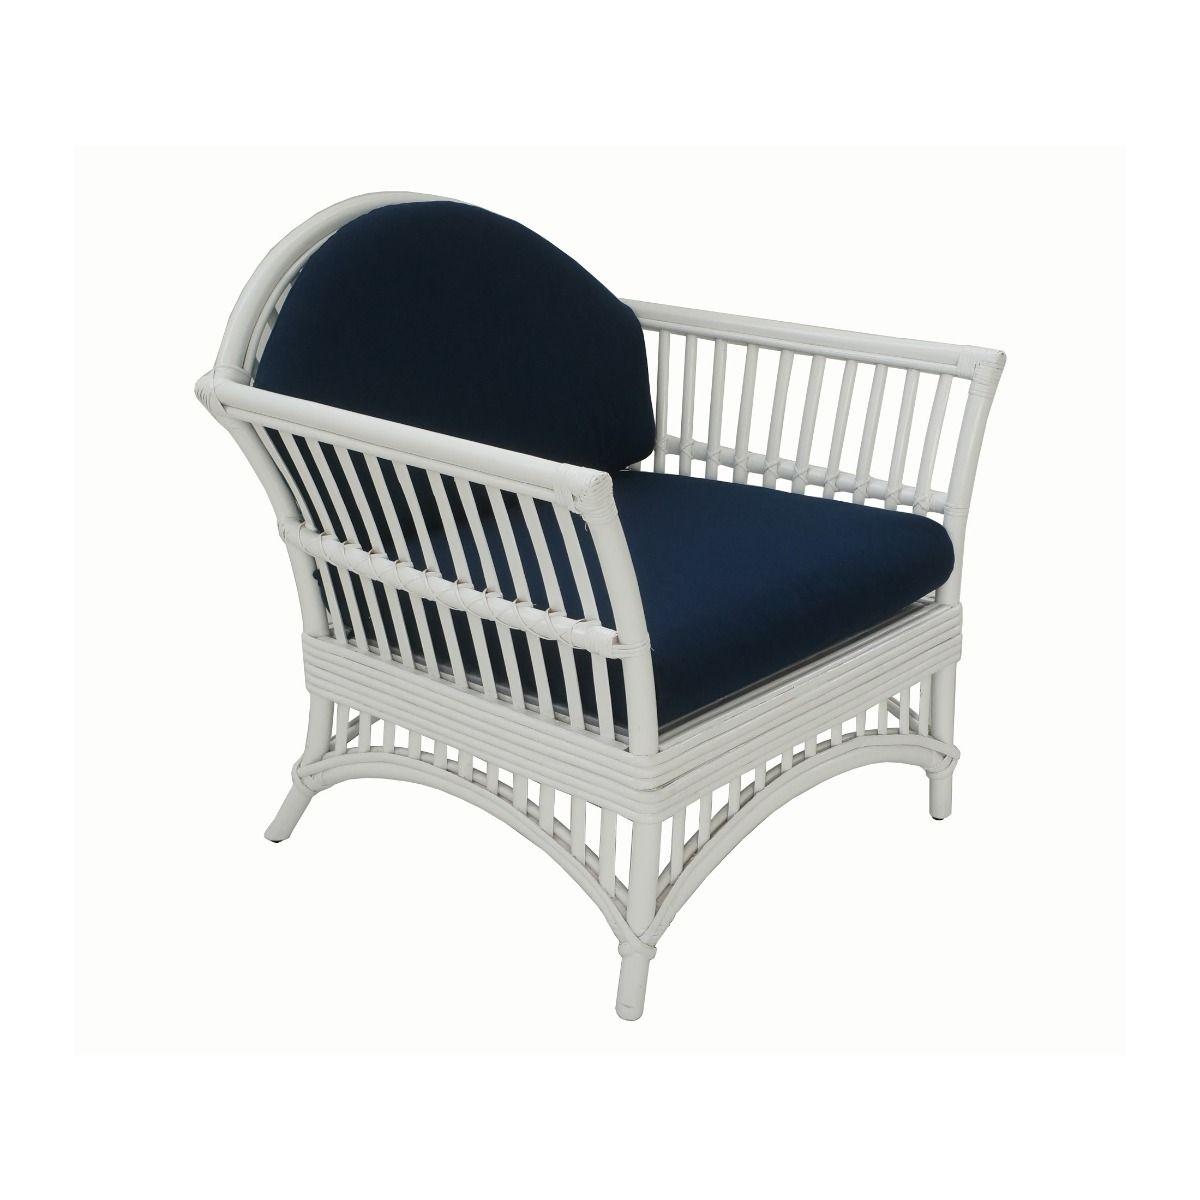 Harbour Island Armchair